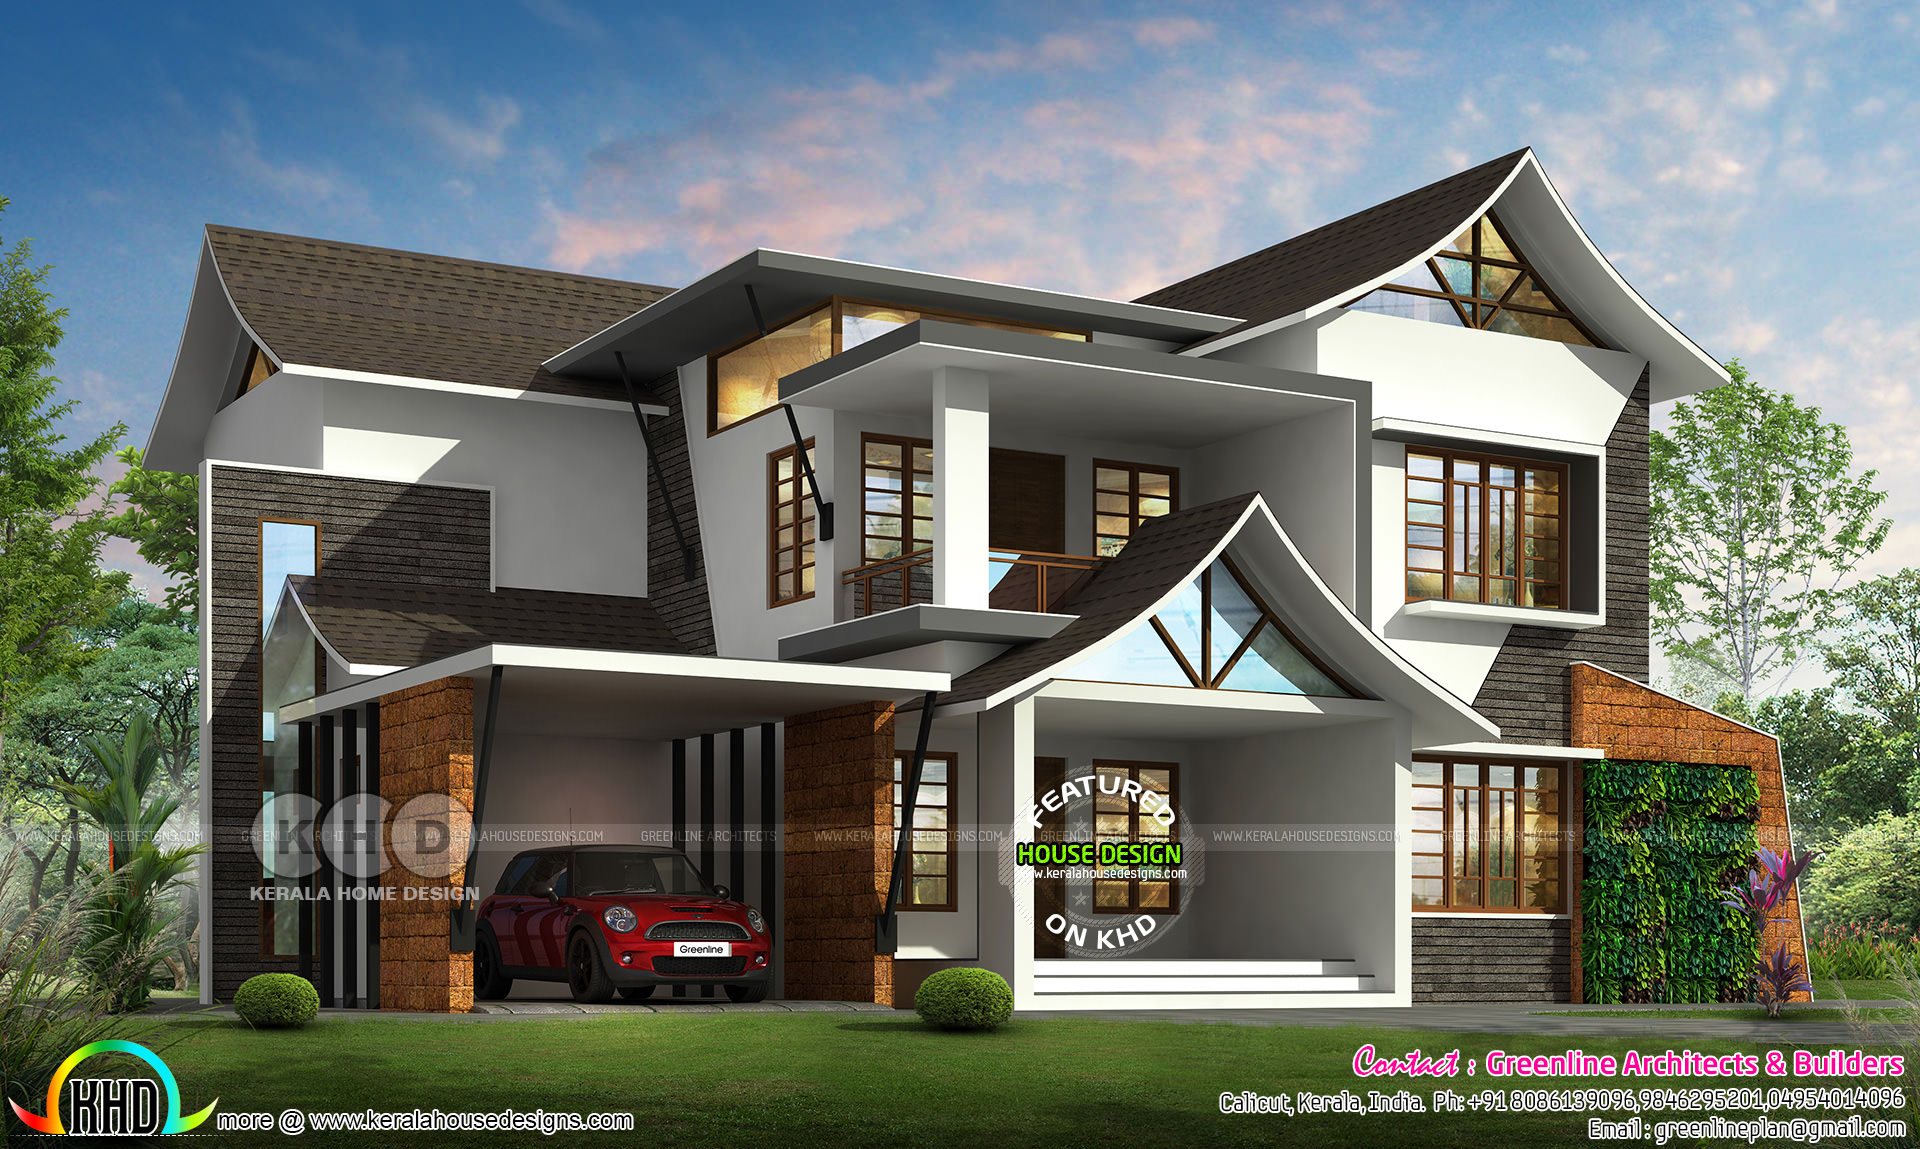 3176 Sq Ft Modern Style Sloped Roof House Plan Kerala Home Design Bloglovin